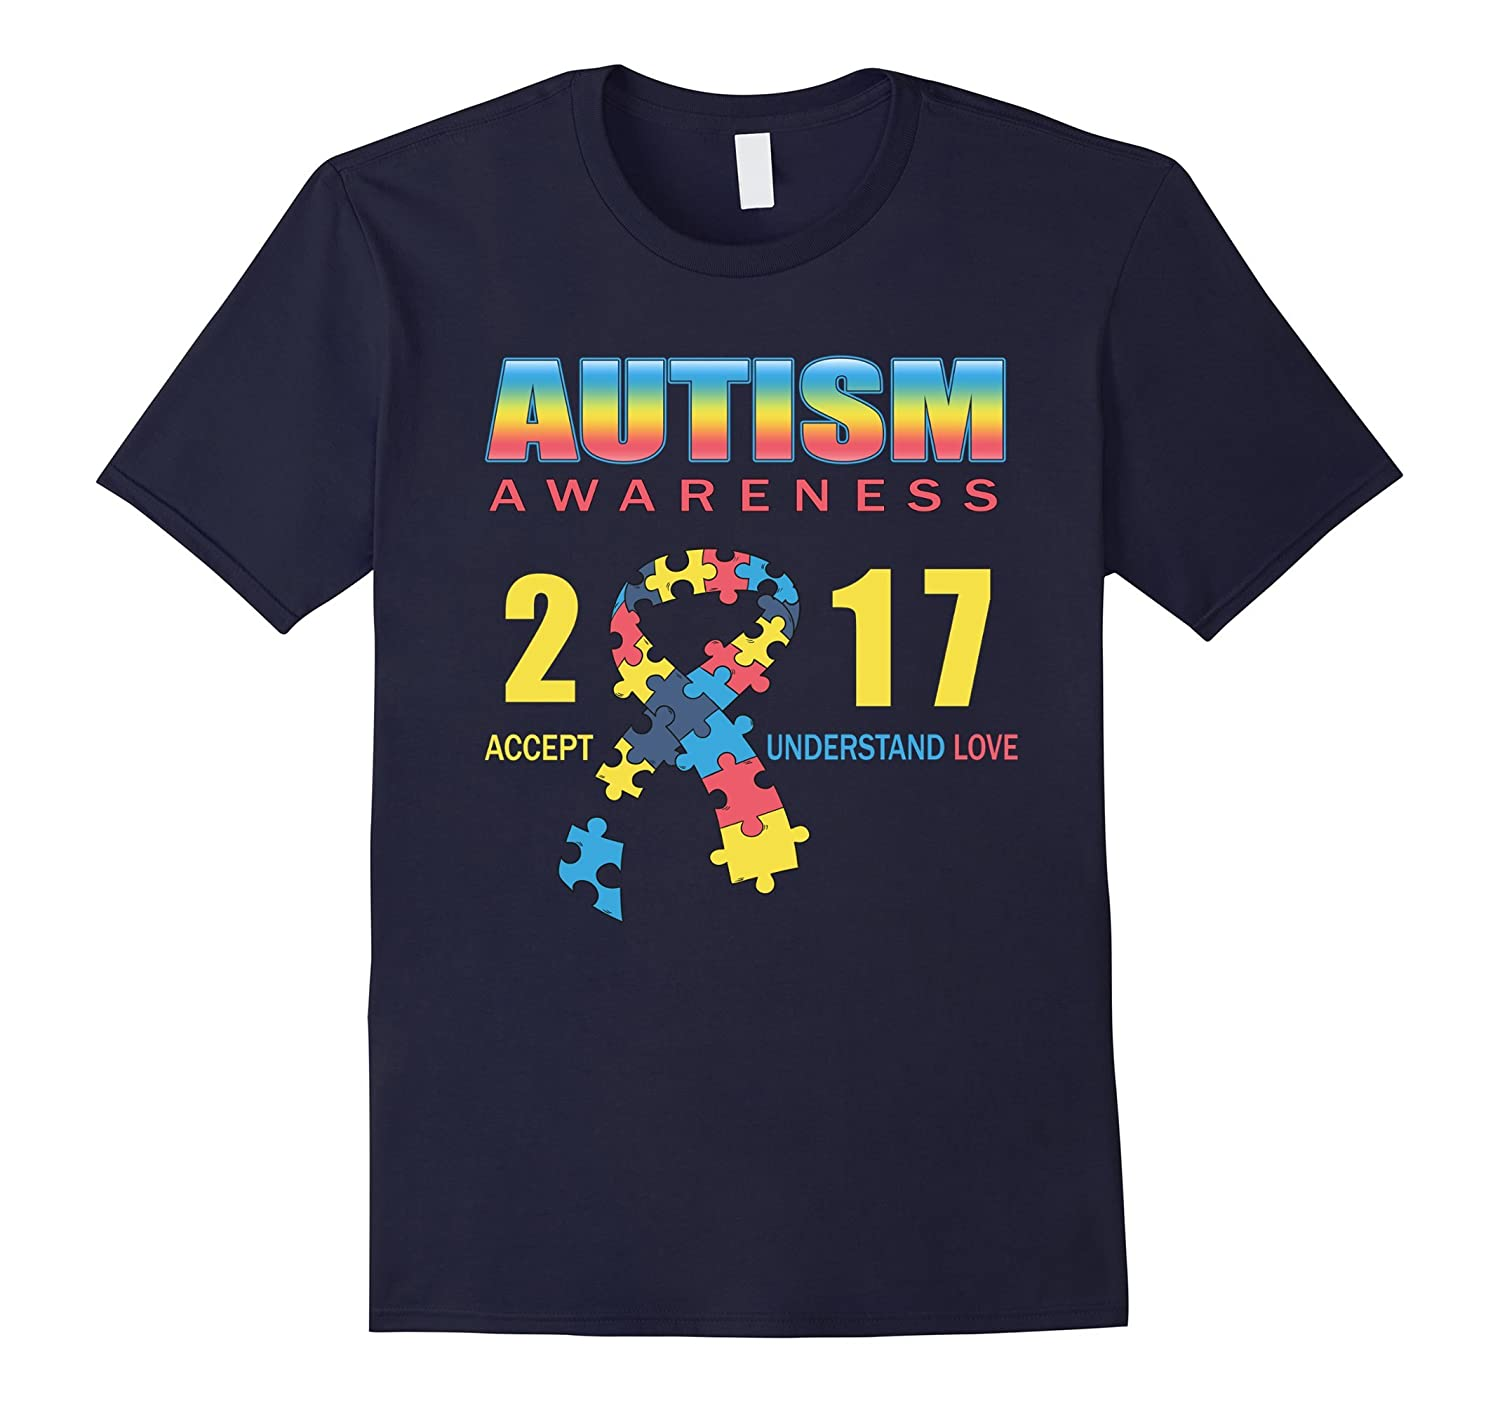 Autism Awareness 2017 T Shirt  5 colors choice-TD